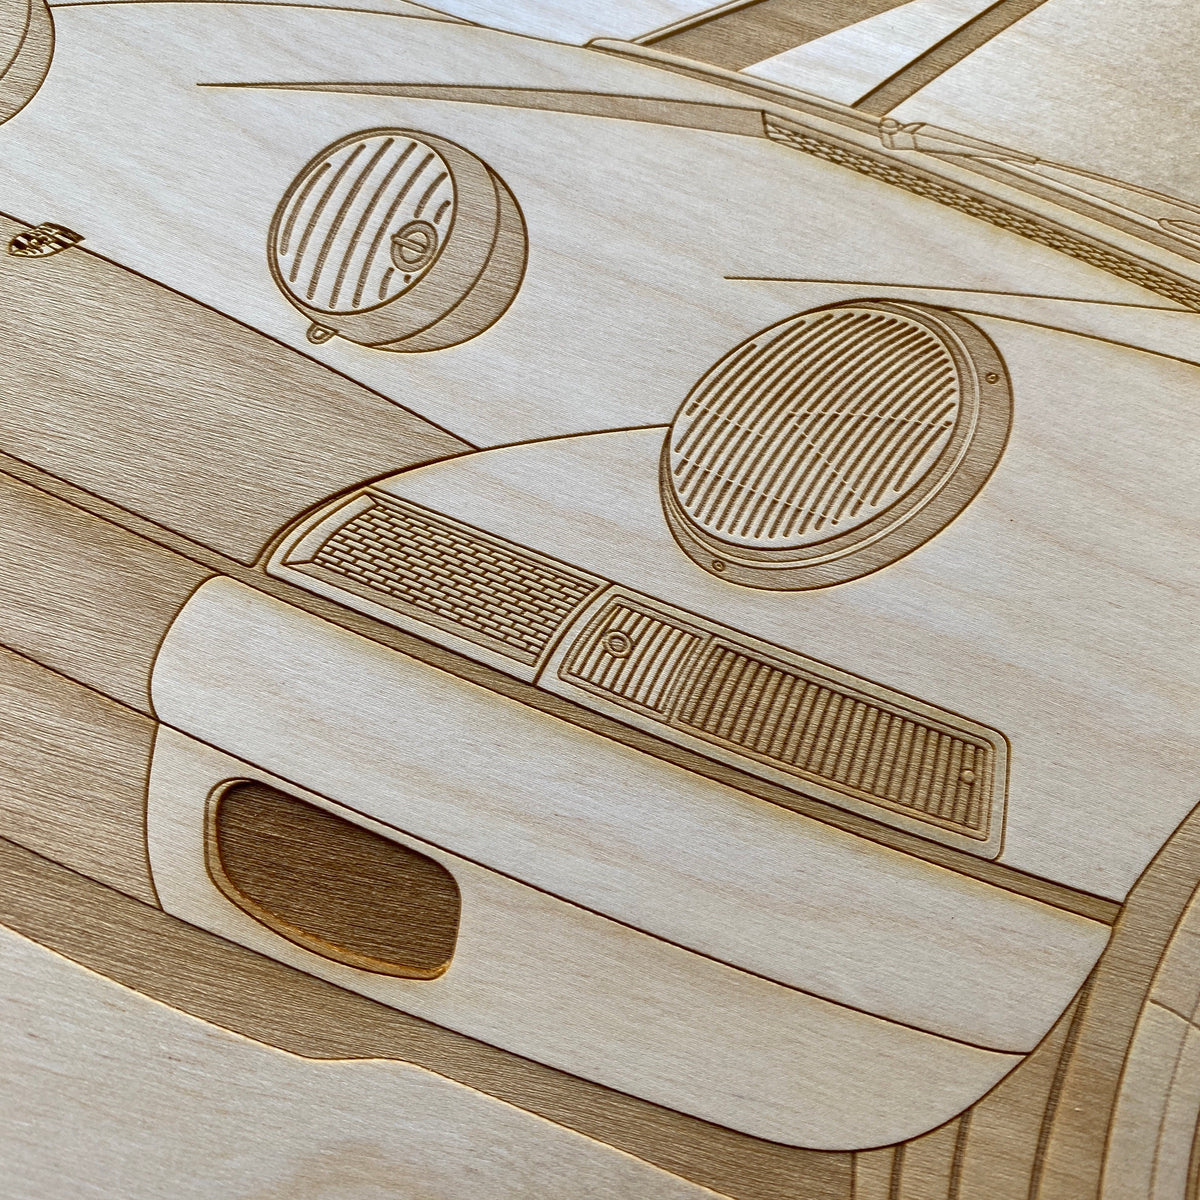 Emory Outlaw 911k Framed Wood Engraved Artwork